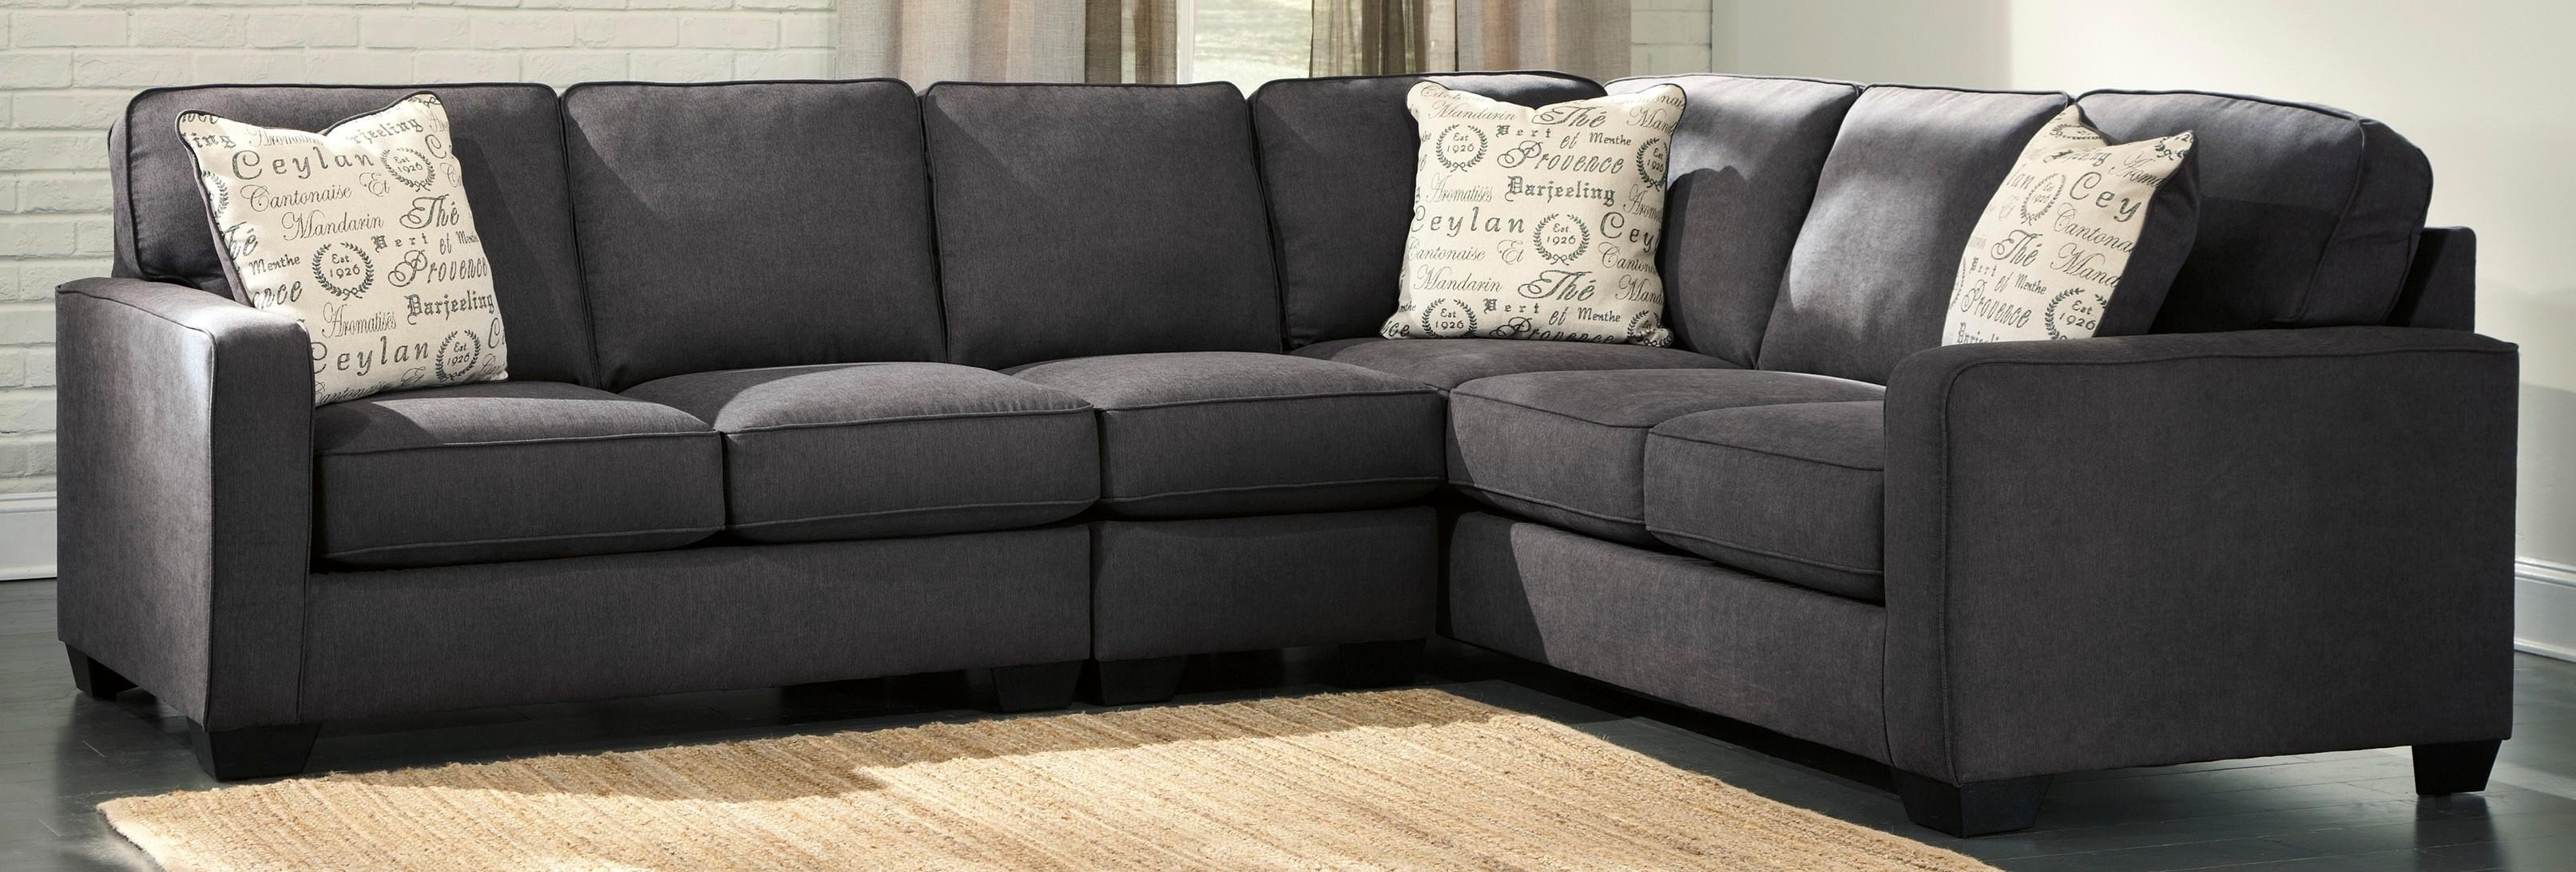 Interior: Gorgeous Lady Charcoal Sectional For Living Room With Regard To Individual Piece Sectional Sofas (Image 9 of 20)